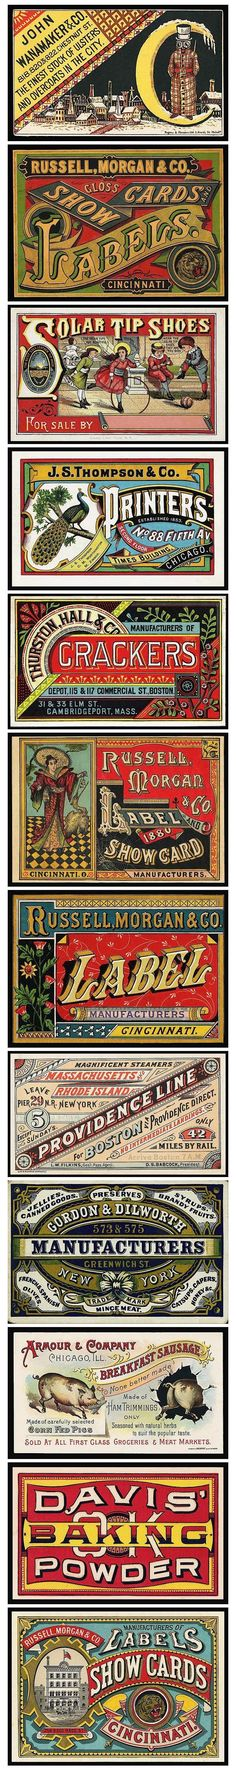 Typography - Typography Business Cards straight out of the Victorian Era via - CoDesign Magazine Vintage Type, Vintage Prints, Vintage Posters, Vintage Designs, Vintage Art, Vintage Graphic, Business Card Maker, Business Card Design, Vintage Packaging